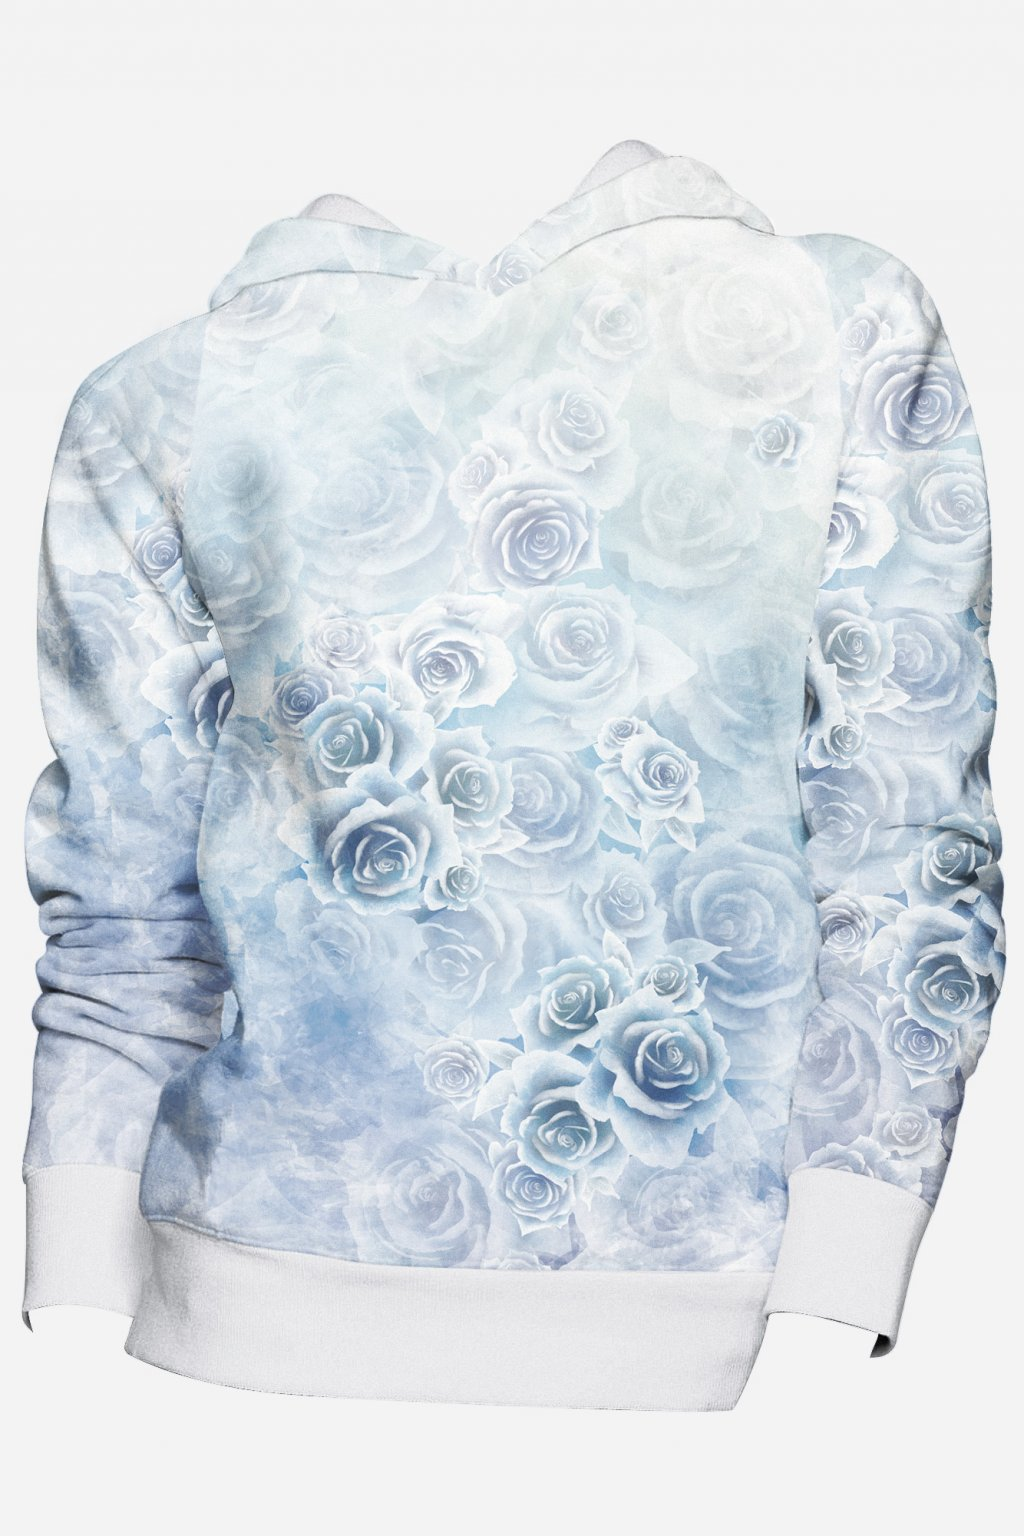 mikina frozen roses front fullprint by utopy